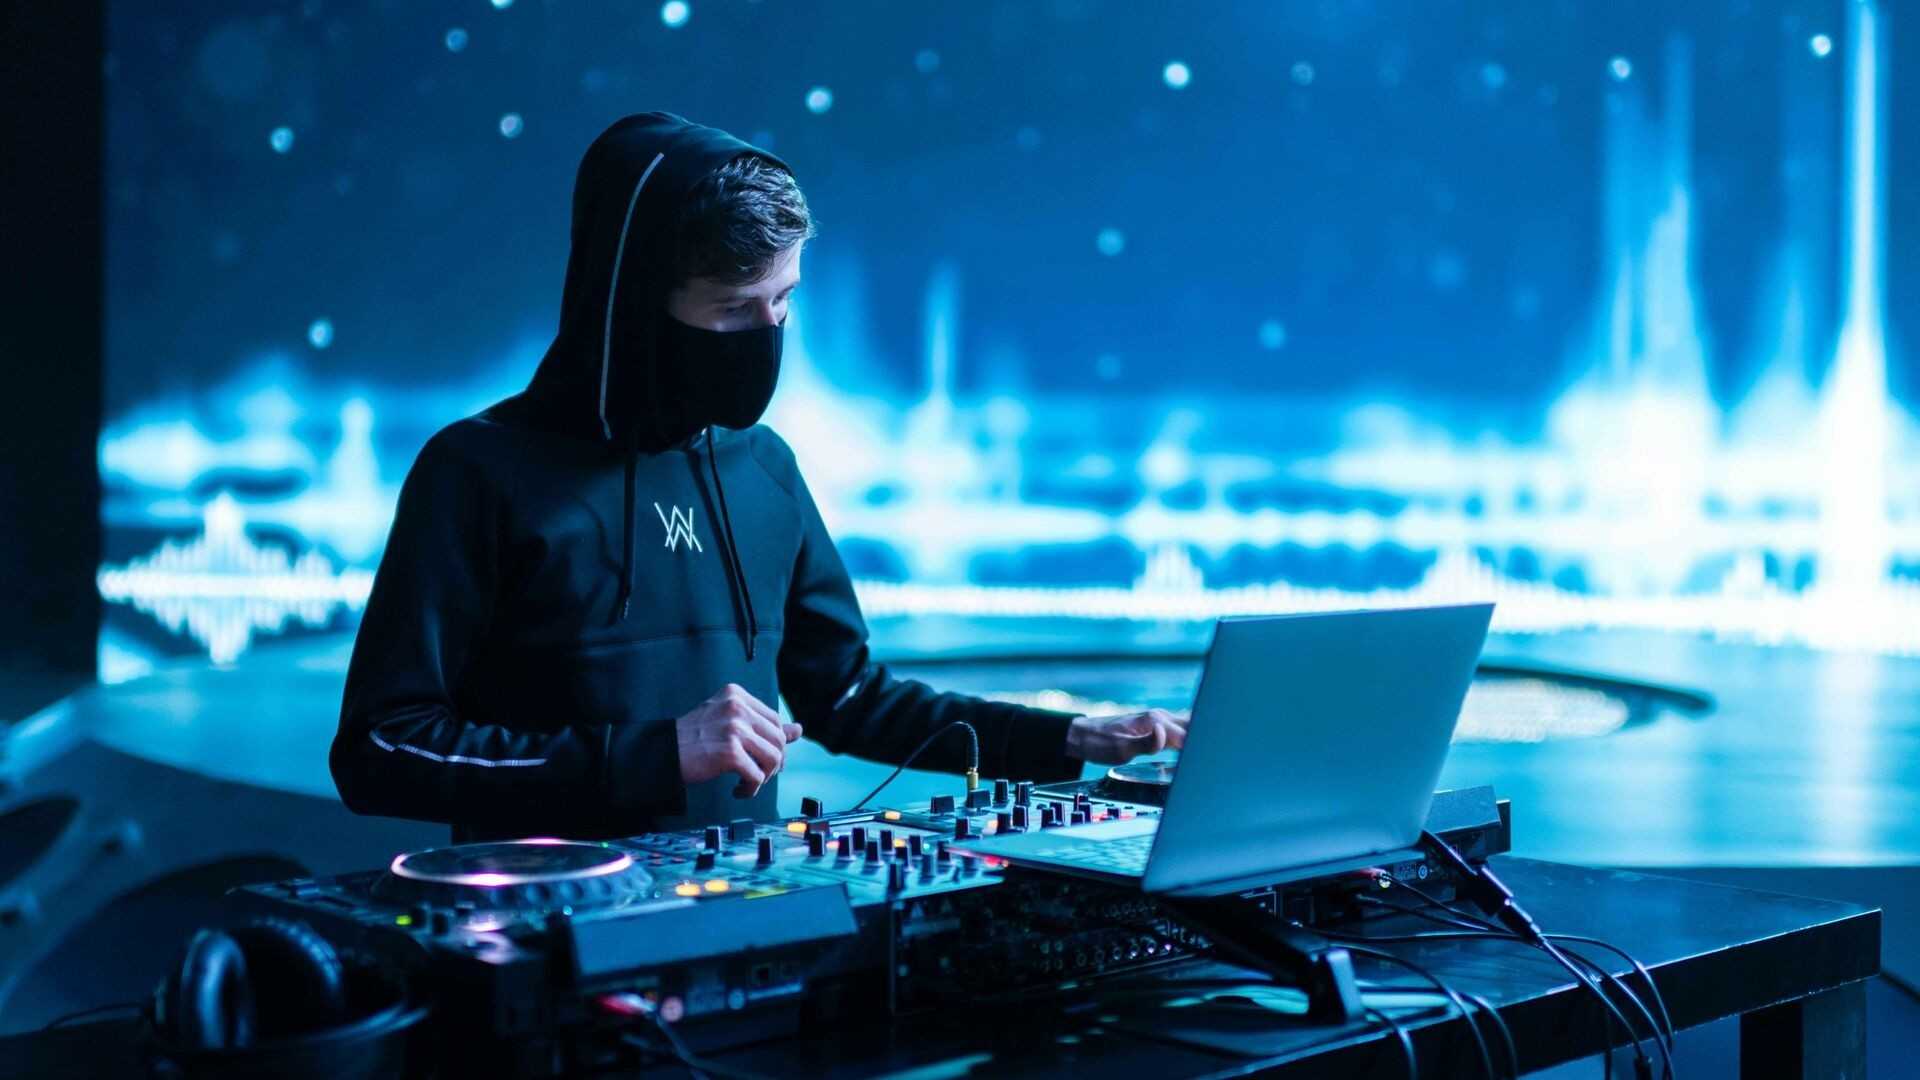 Alan Walker hd wallpaper download